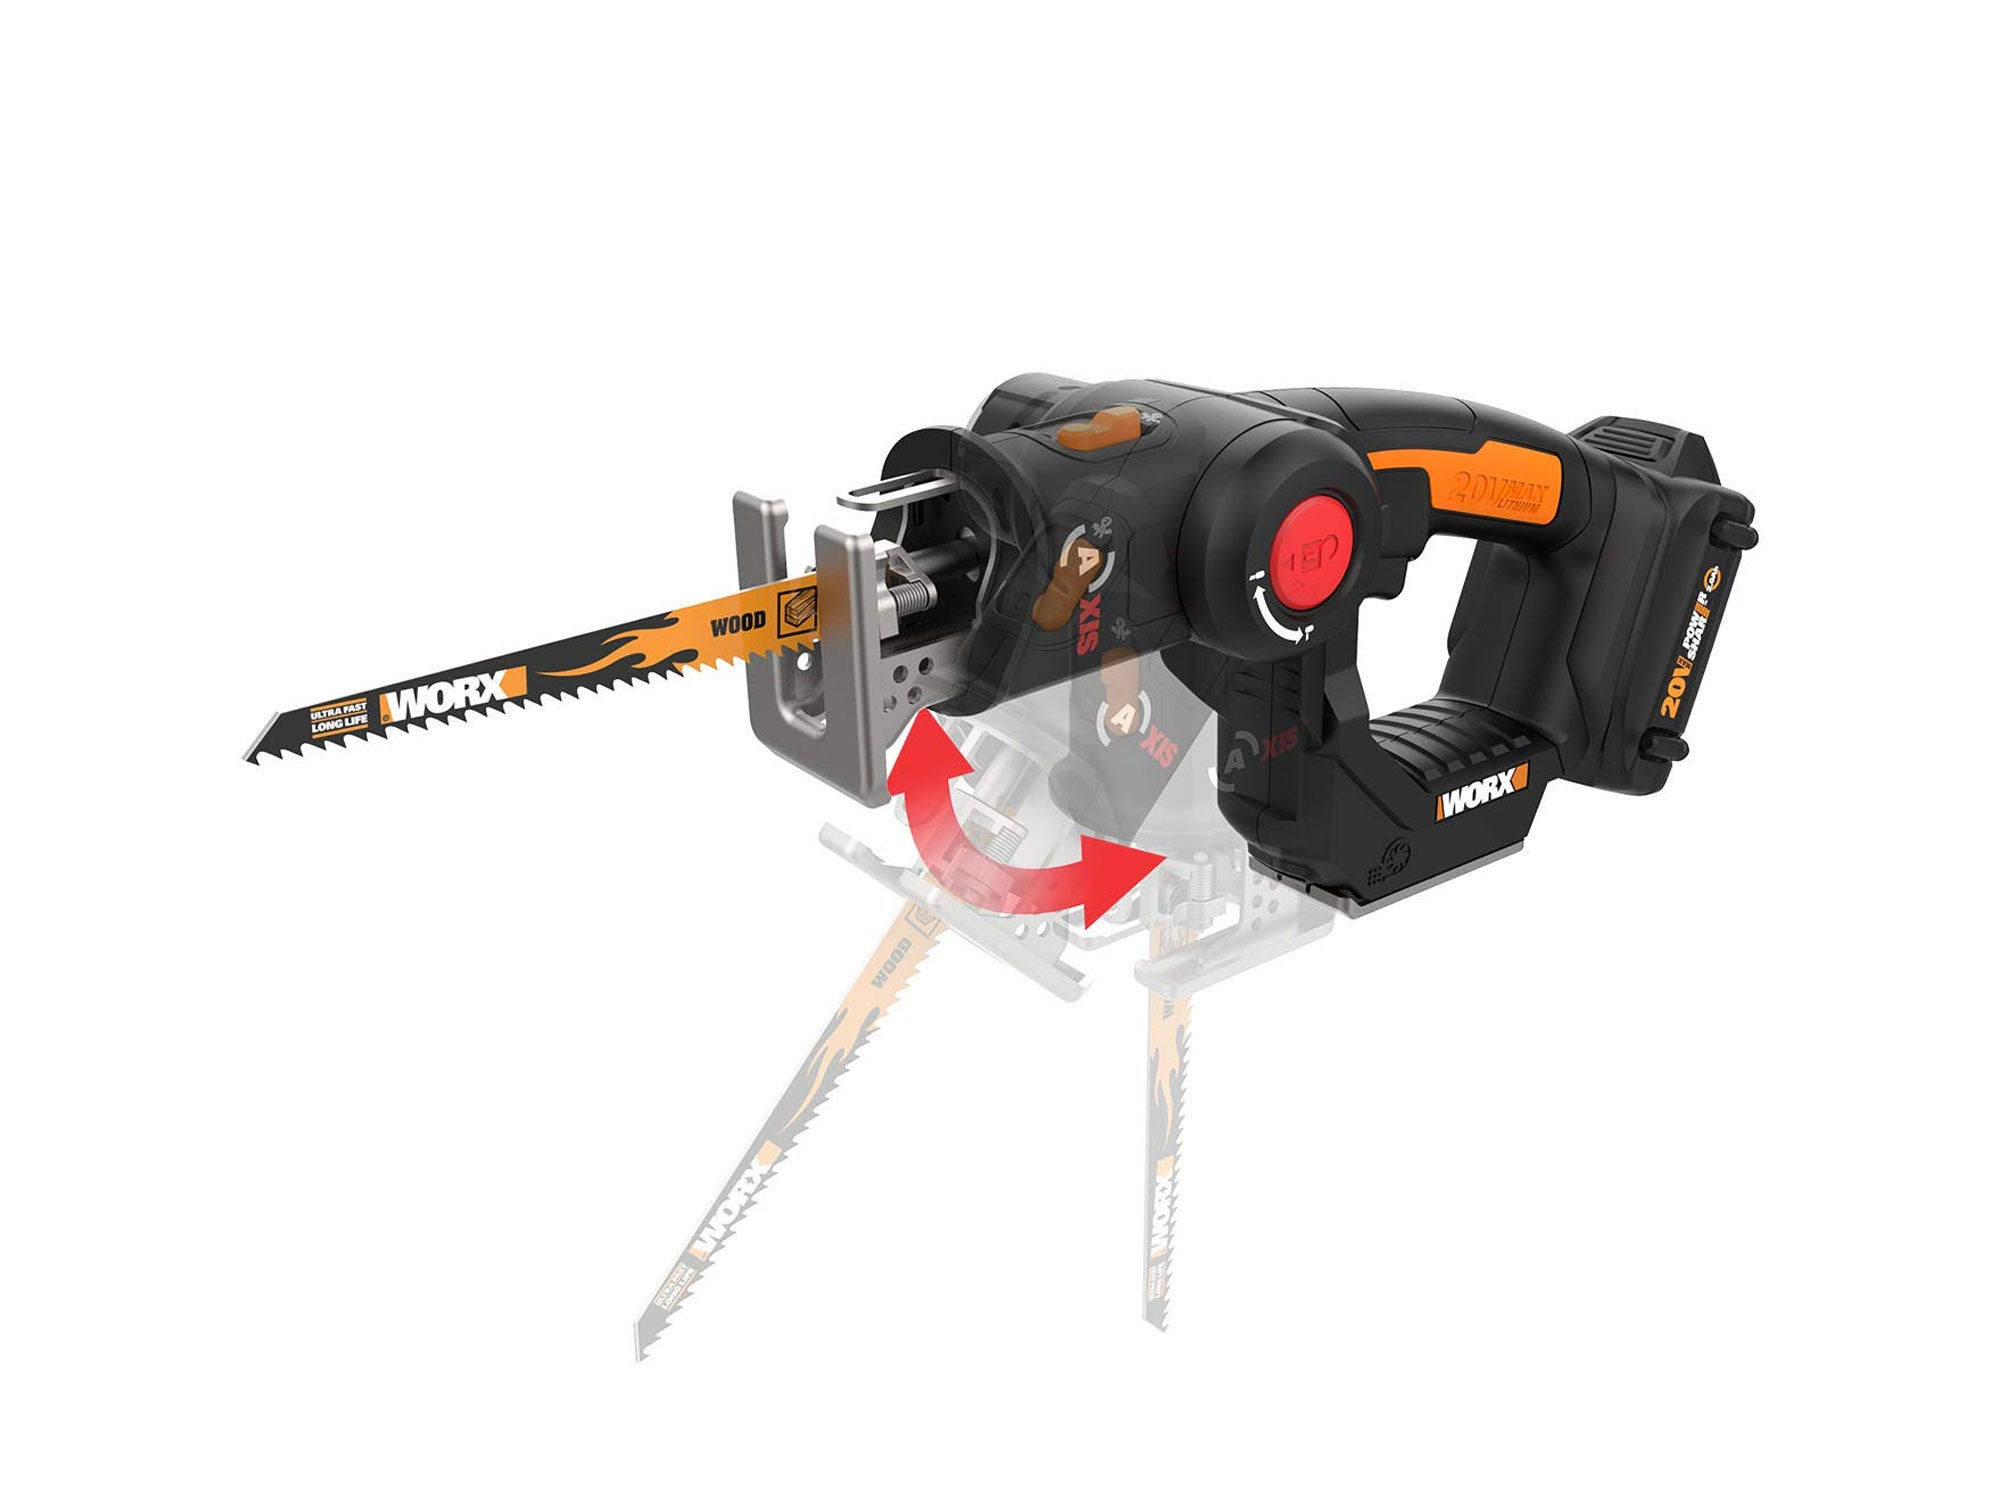 WORX 20V AXIS 2-in-1 Reciprocating Saw and Jigsaw with Orbital Mode